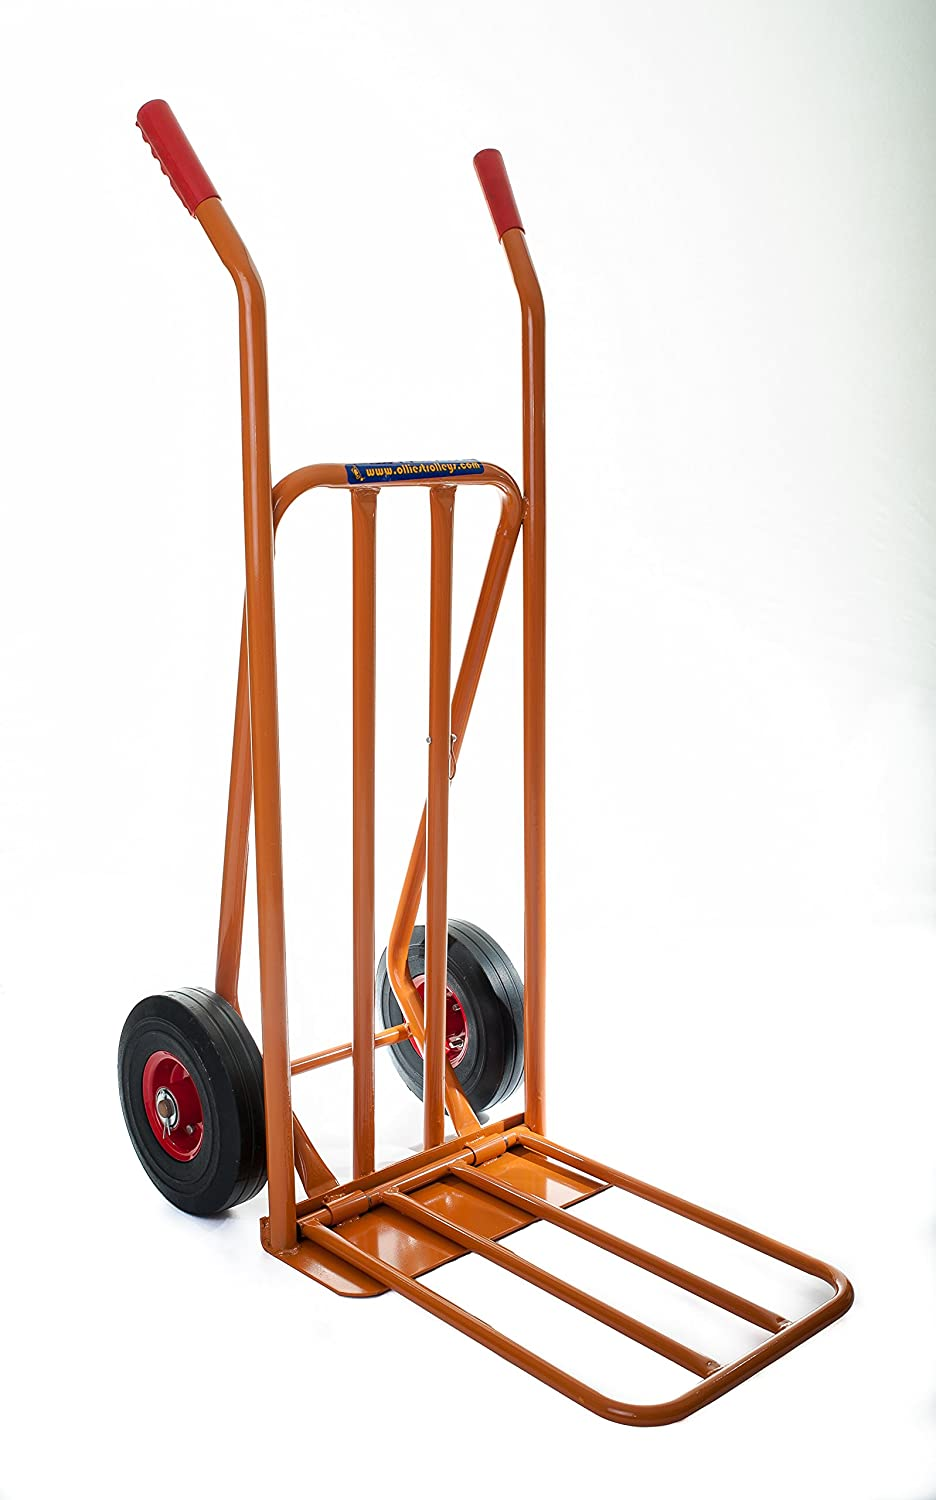 Heavy duty 300Kg capacity sack trolley truck barrow with extendable toe. over 6, 000 sold in UK. OT1001- READ THE REVIEWS! Ollies Trolleys UK